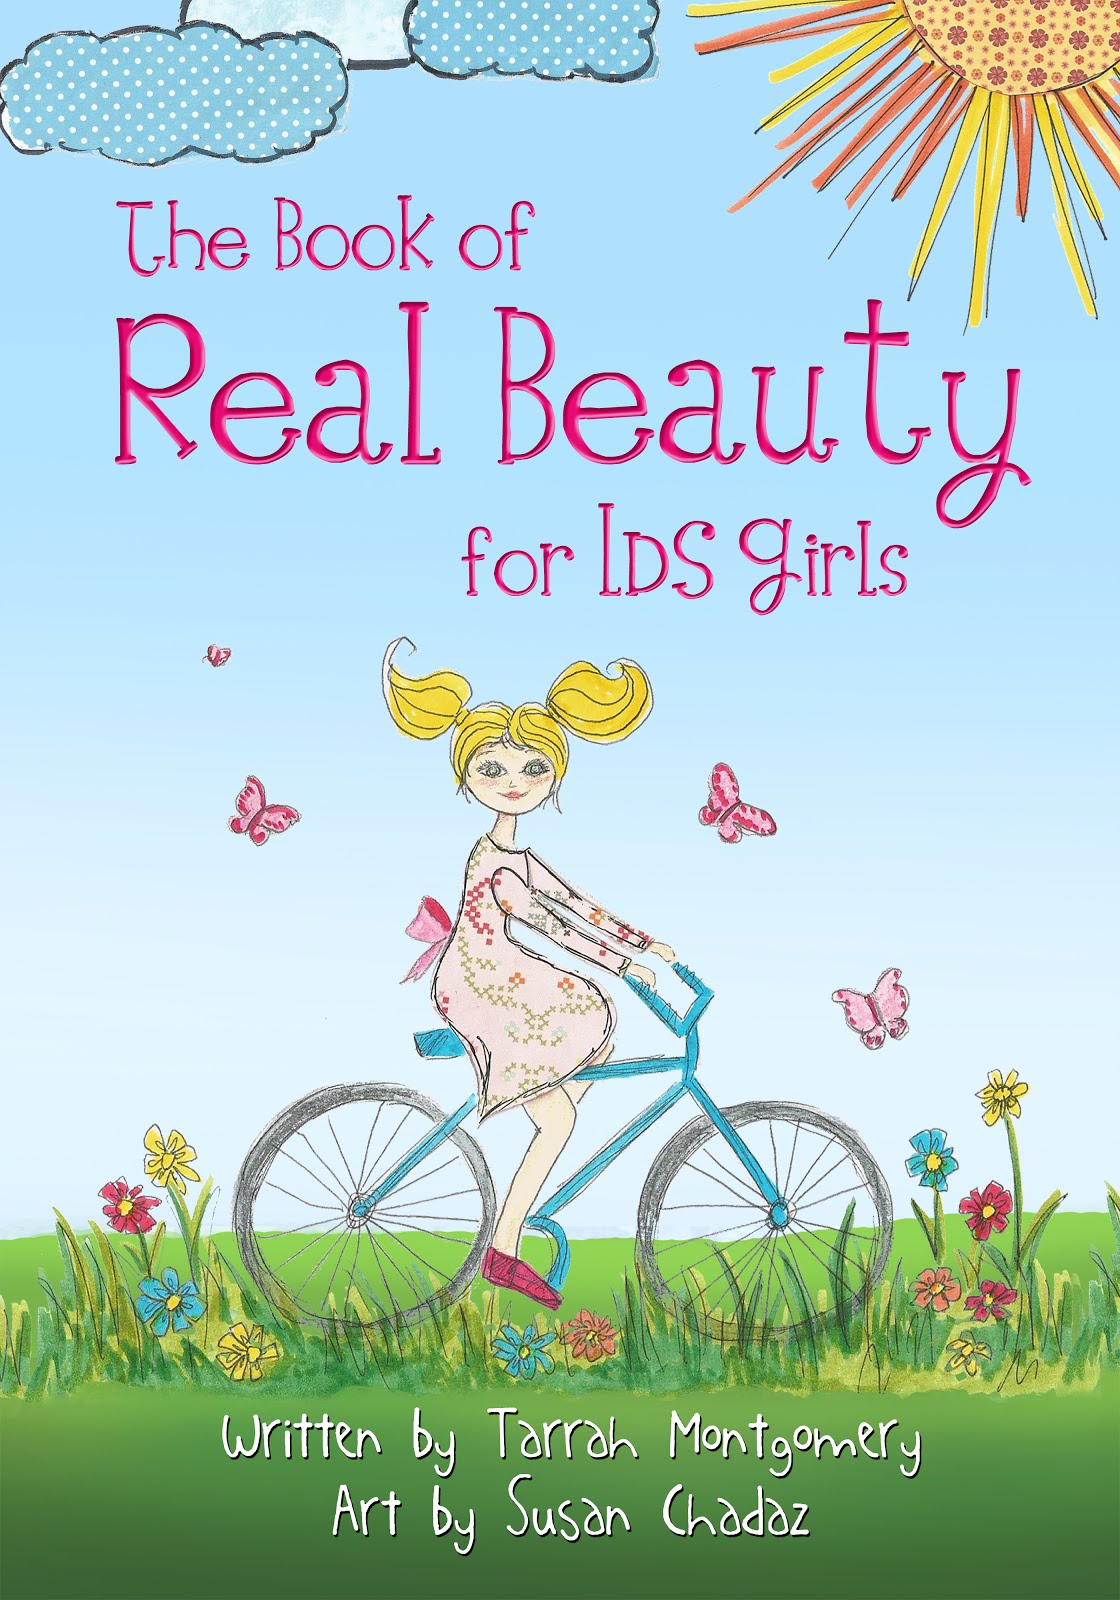 The Book of Real Beauty for LDS Girls